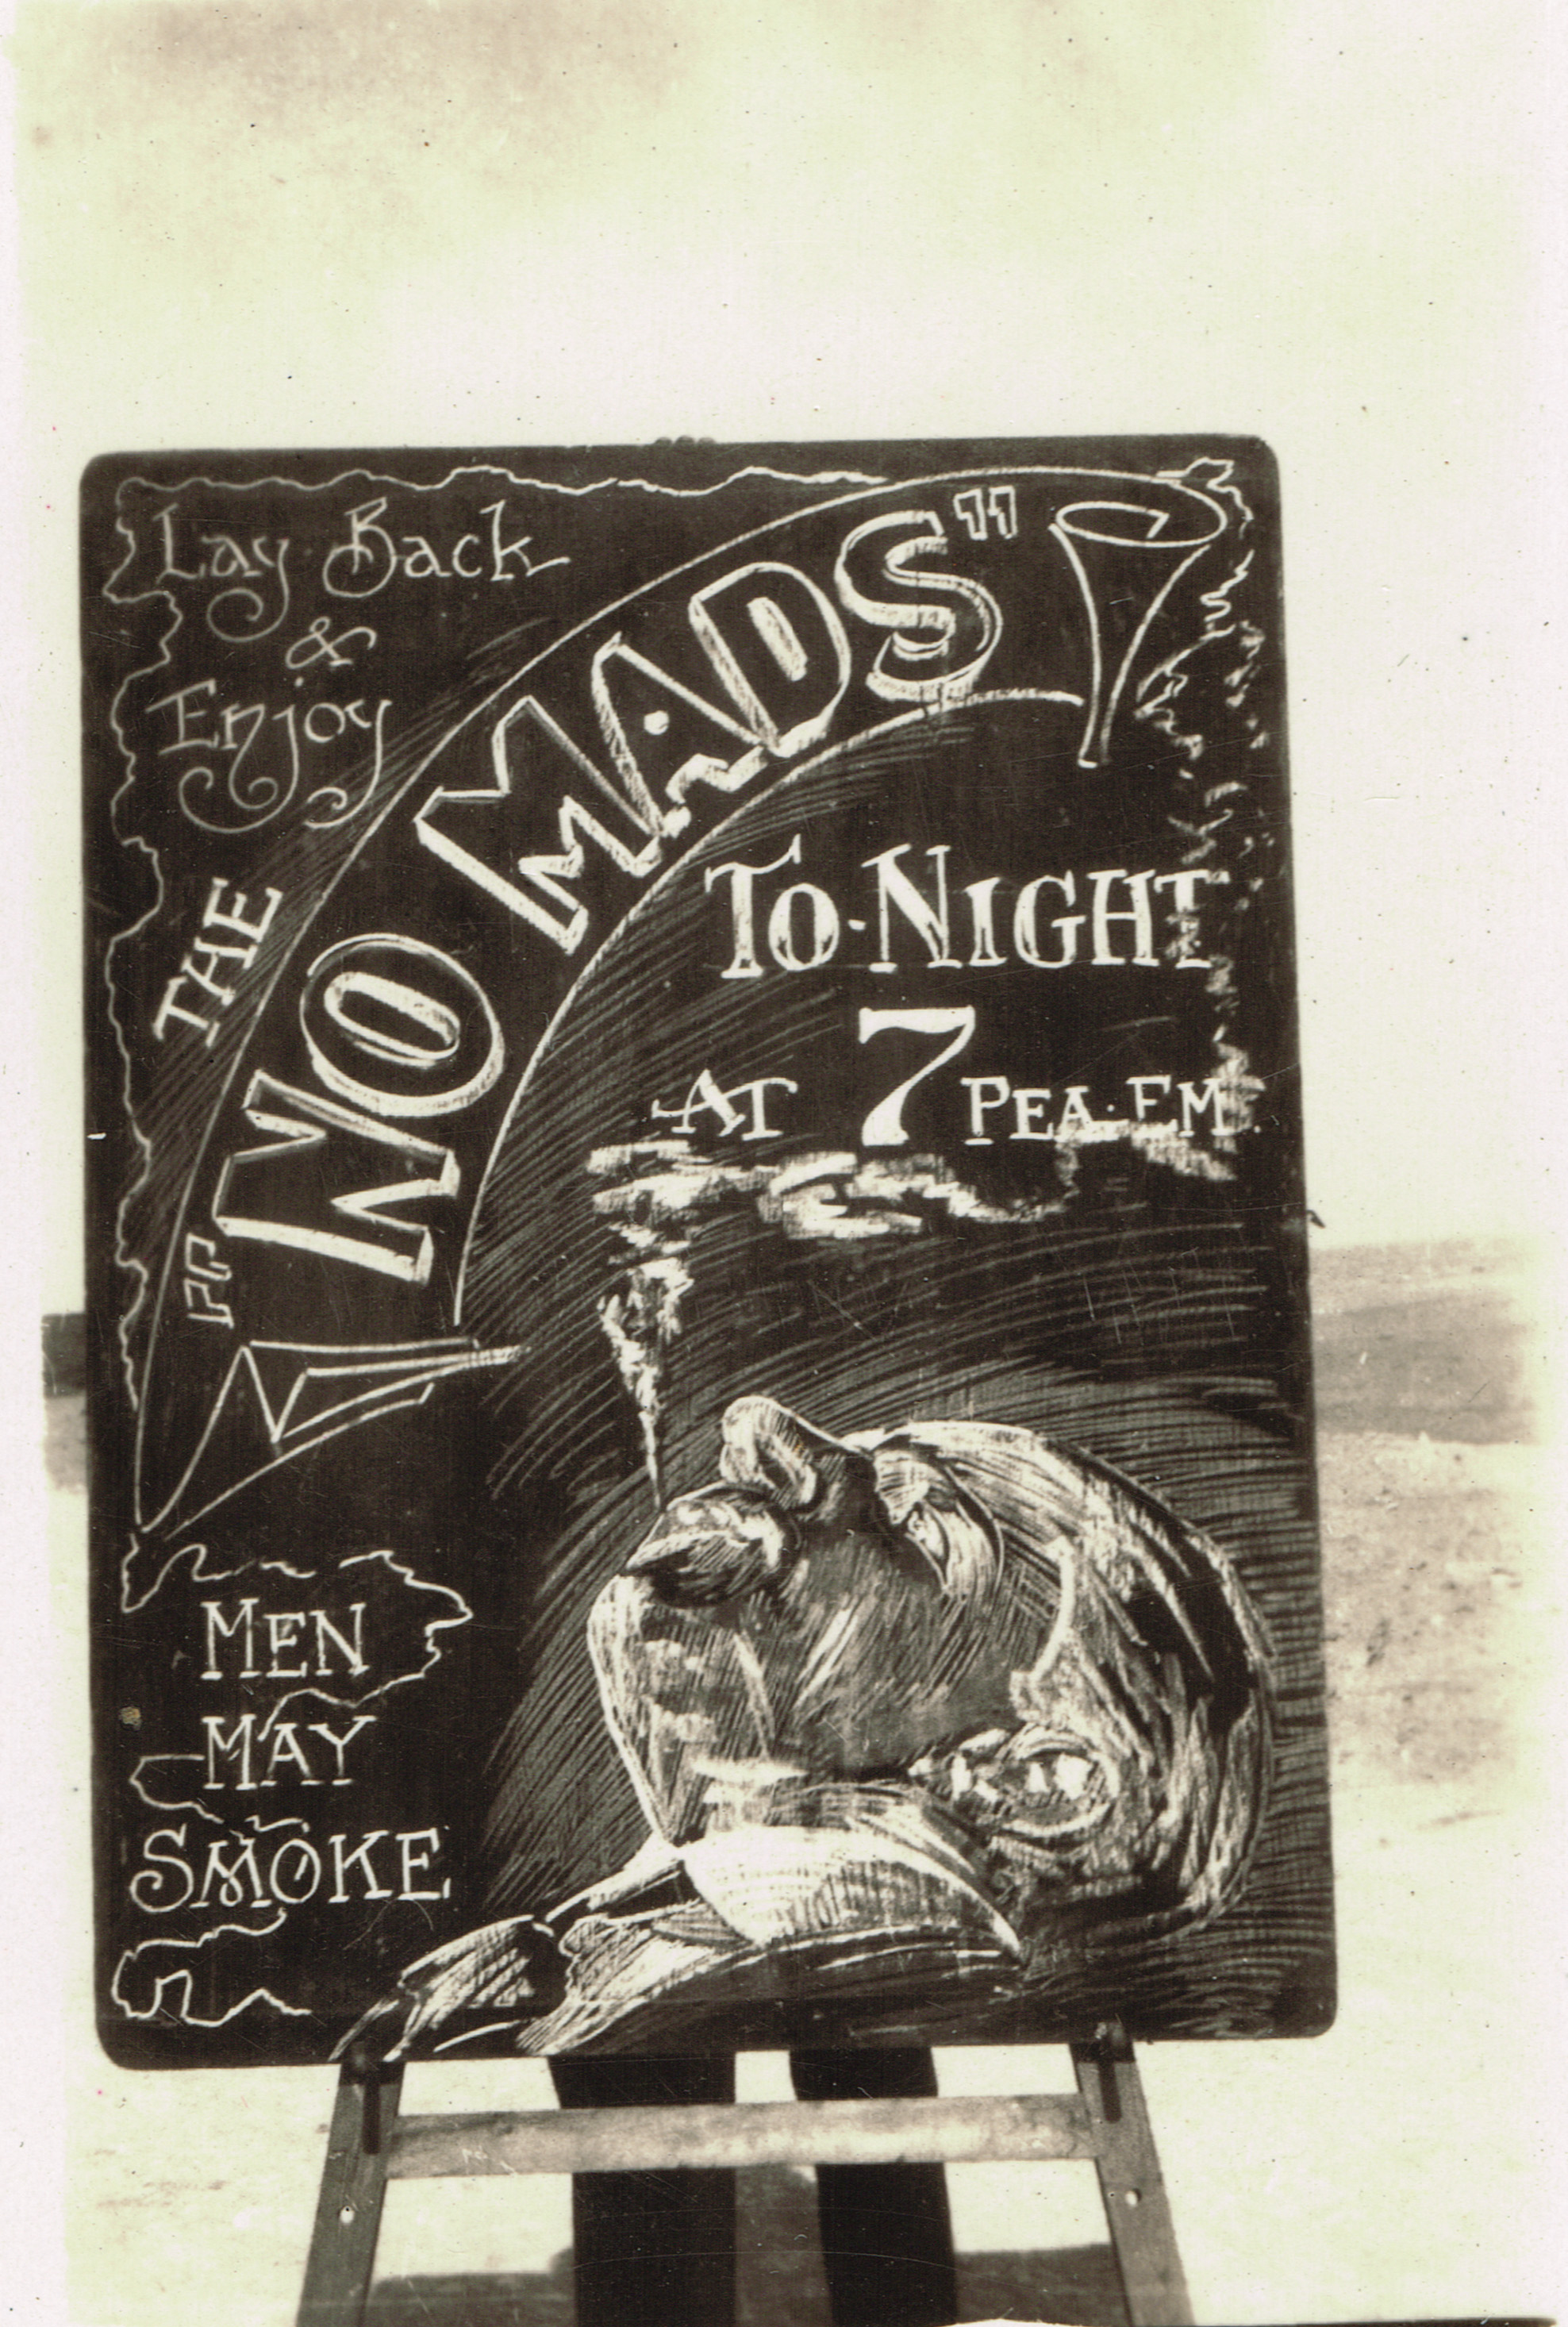 """Reg's chalkboard advertising The Nomads tonight, """"at 7 pea em"""" at Port Said Rest Camp in early 1916 or December to April 1919."""